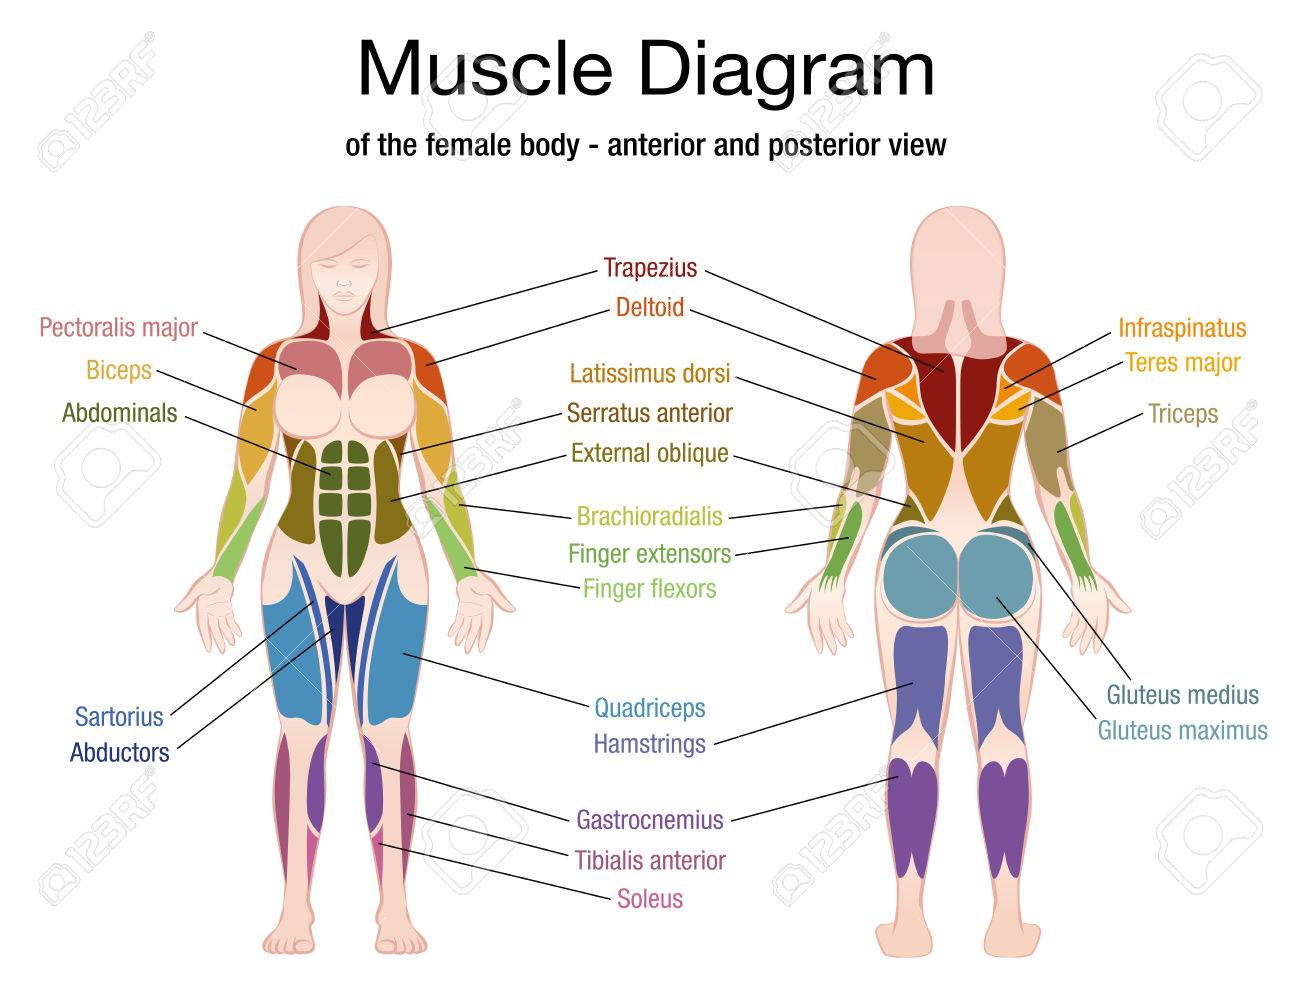 hight resolution of muscle diagram of the female body with accurate description of the most important muscles front